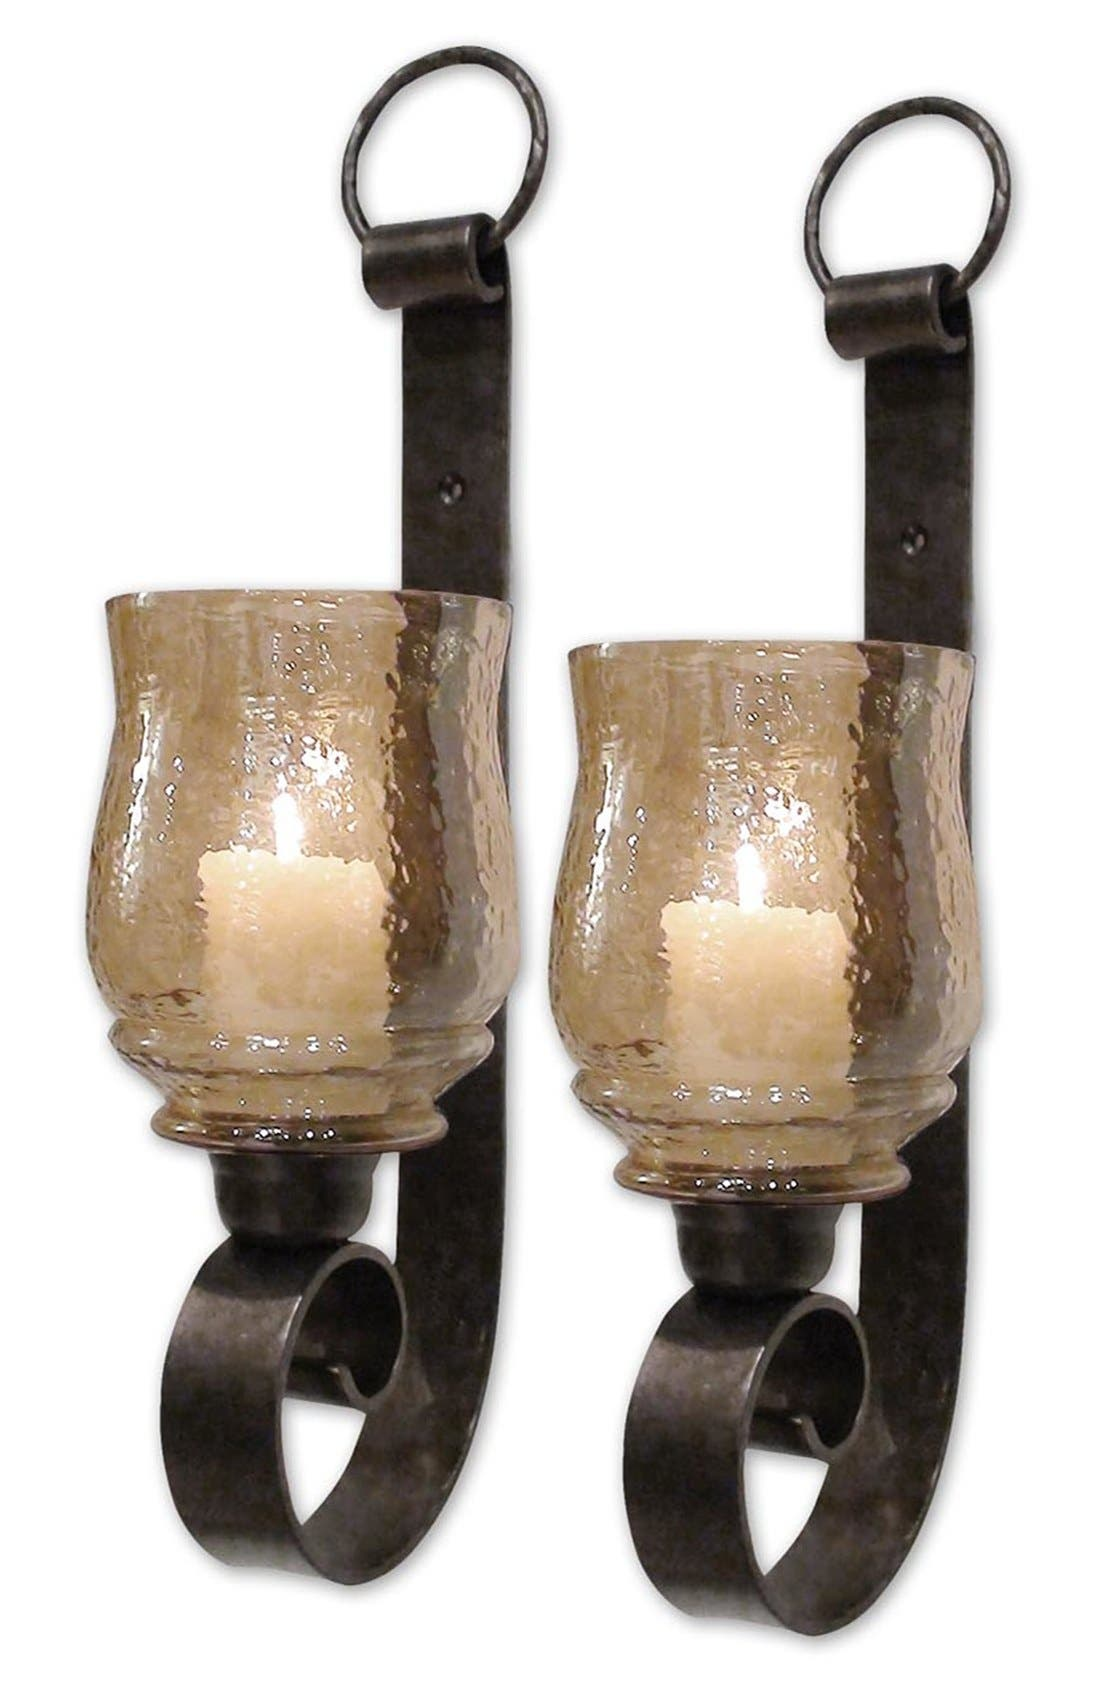 Main Image - Uttermost 'Joselyn - Small' Wall Sconces (Set of 2)